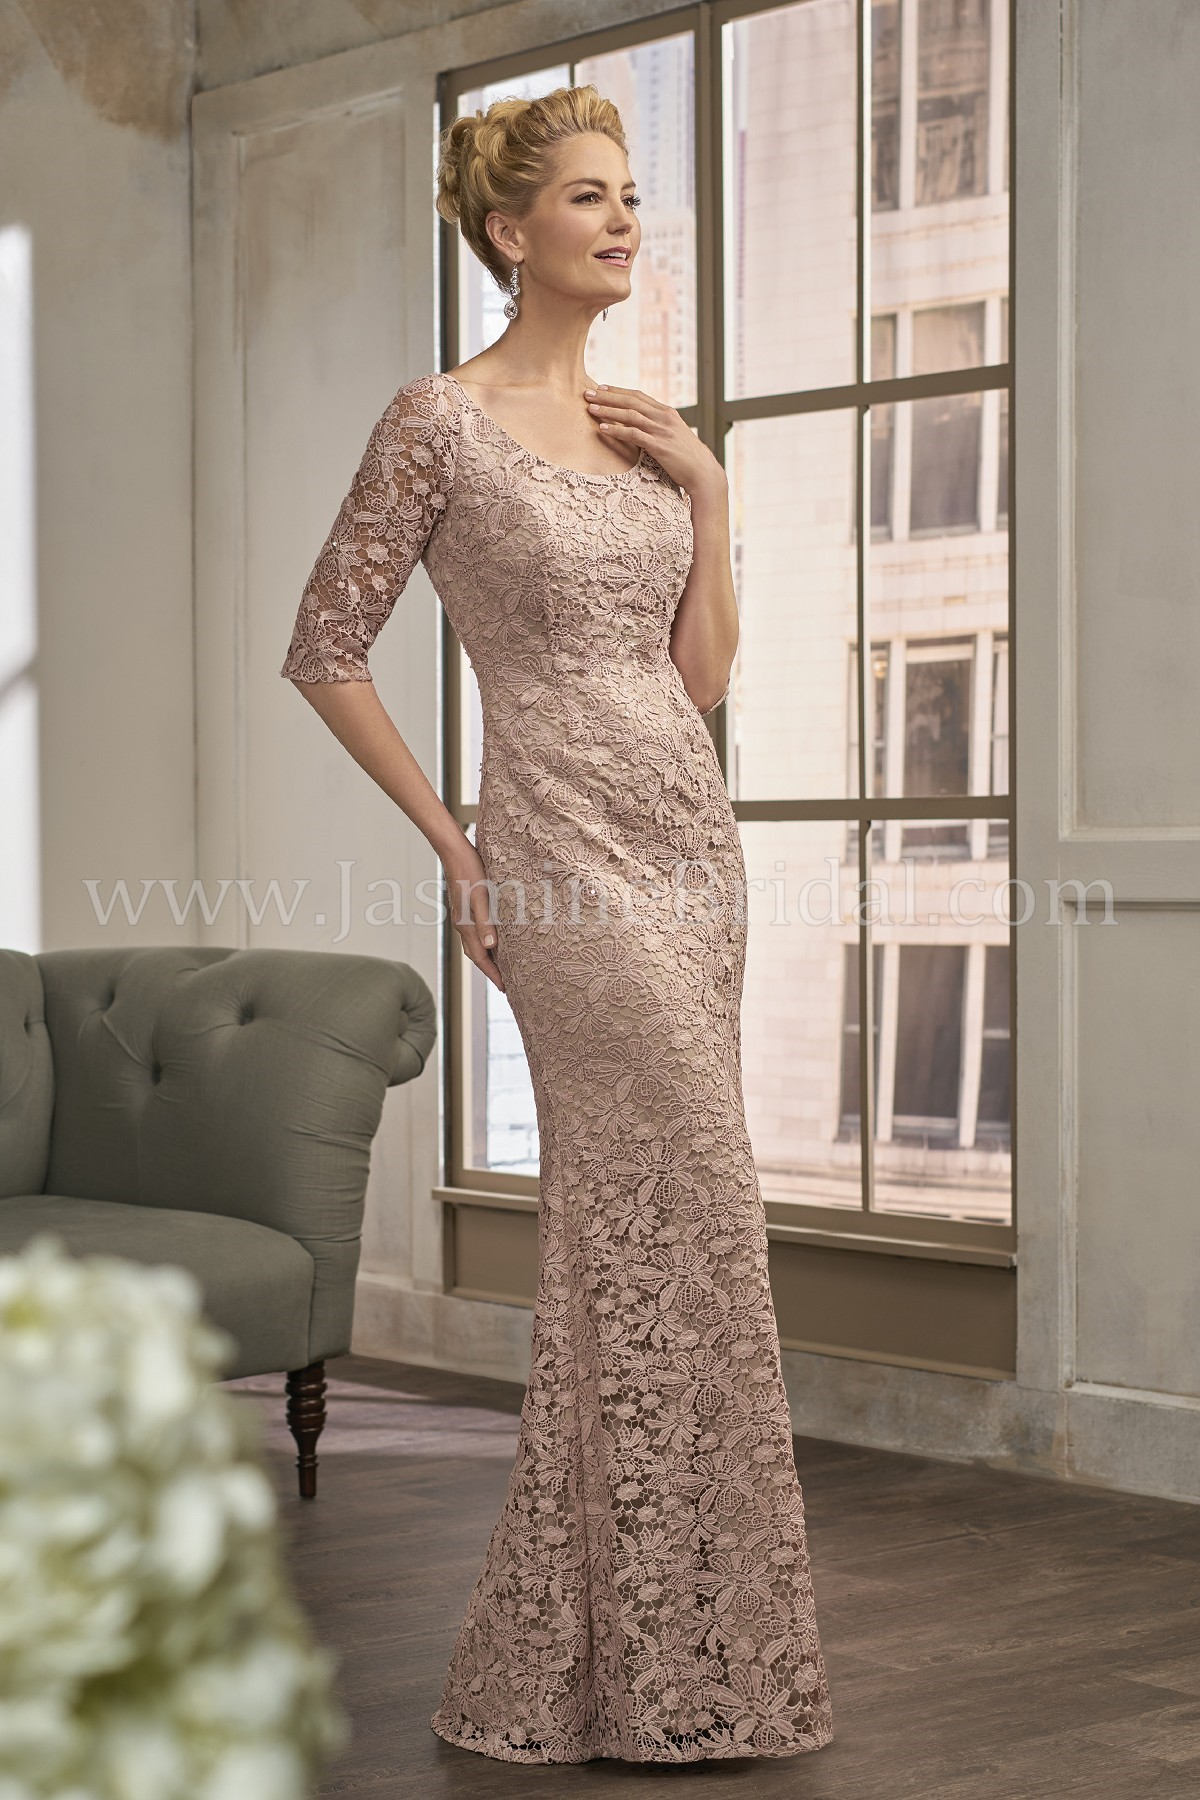 K198013 Long Scoop Neck Lace MOB Dress with Sleeves